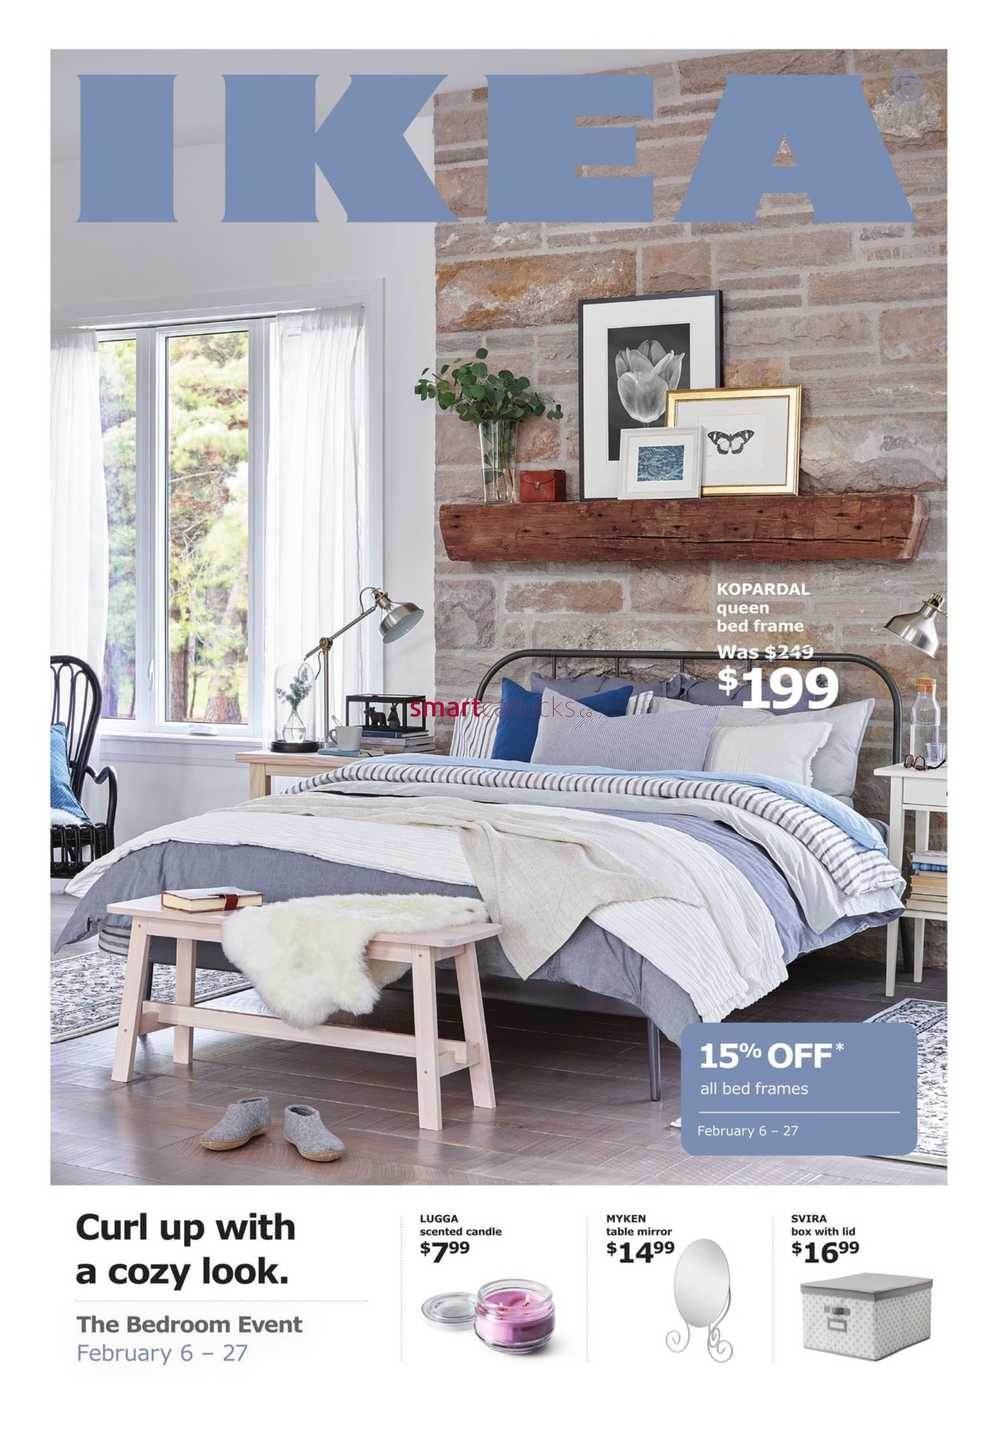 Ikea Bedroom Event Flyer February 10 to 10